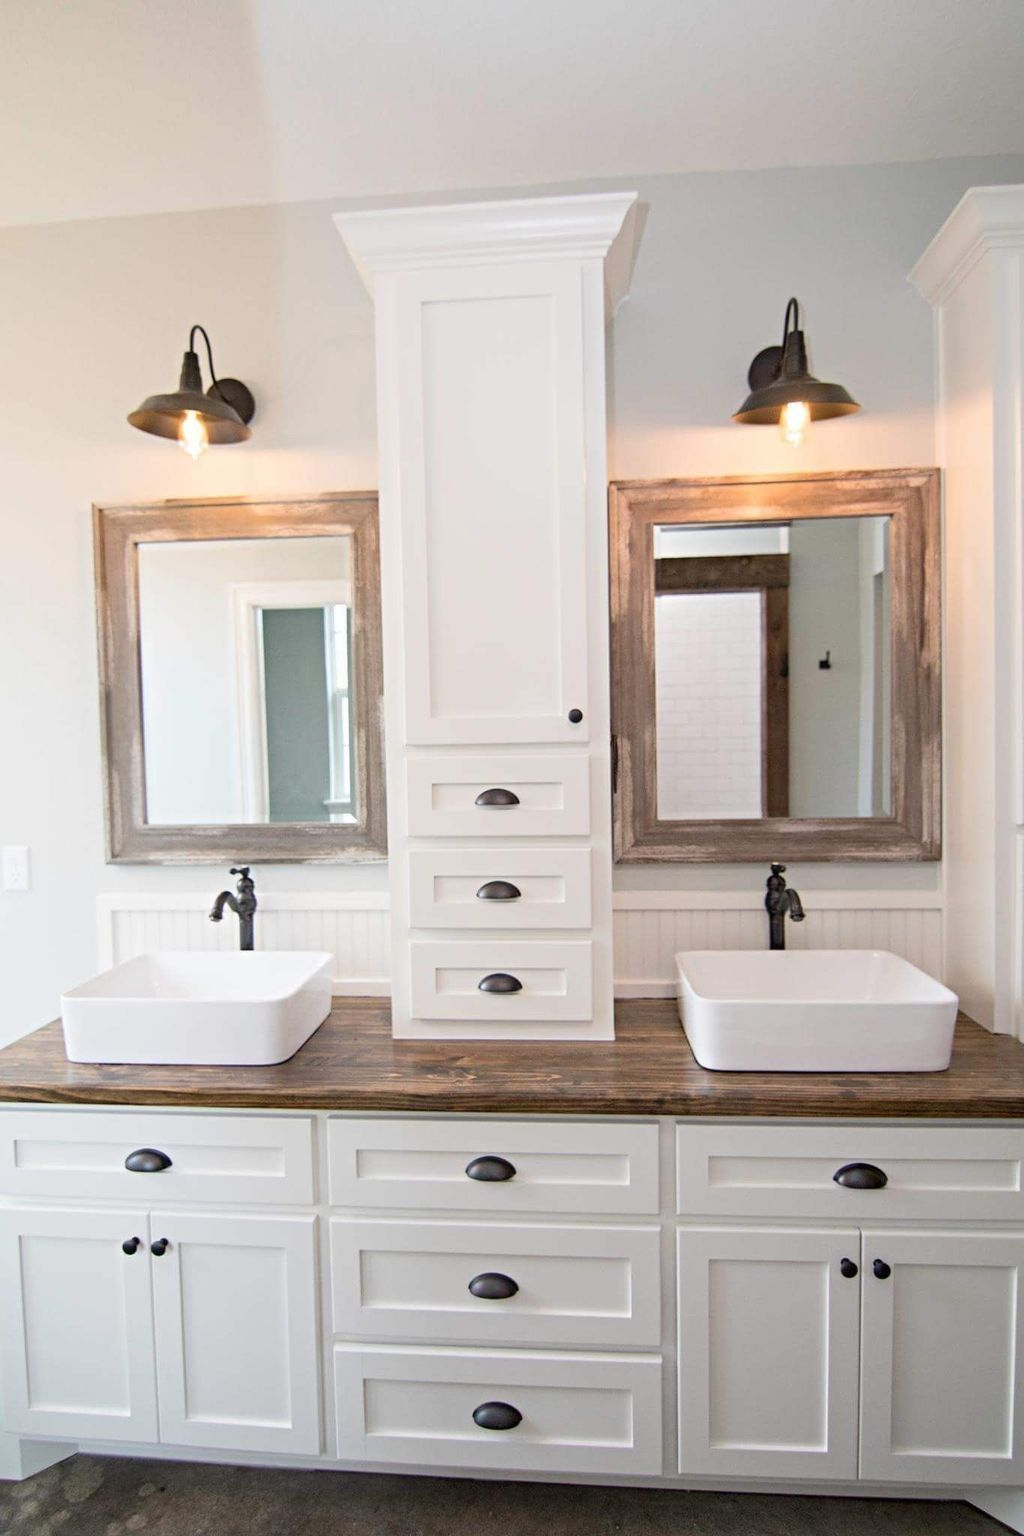 10 Most Beautiful Master Bathroom Ideas That Are Worth Checking For Bathroom Vanity Designs Bathroom Remodel Master Bathrooms Remodel